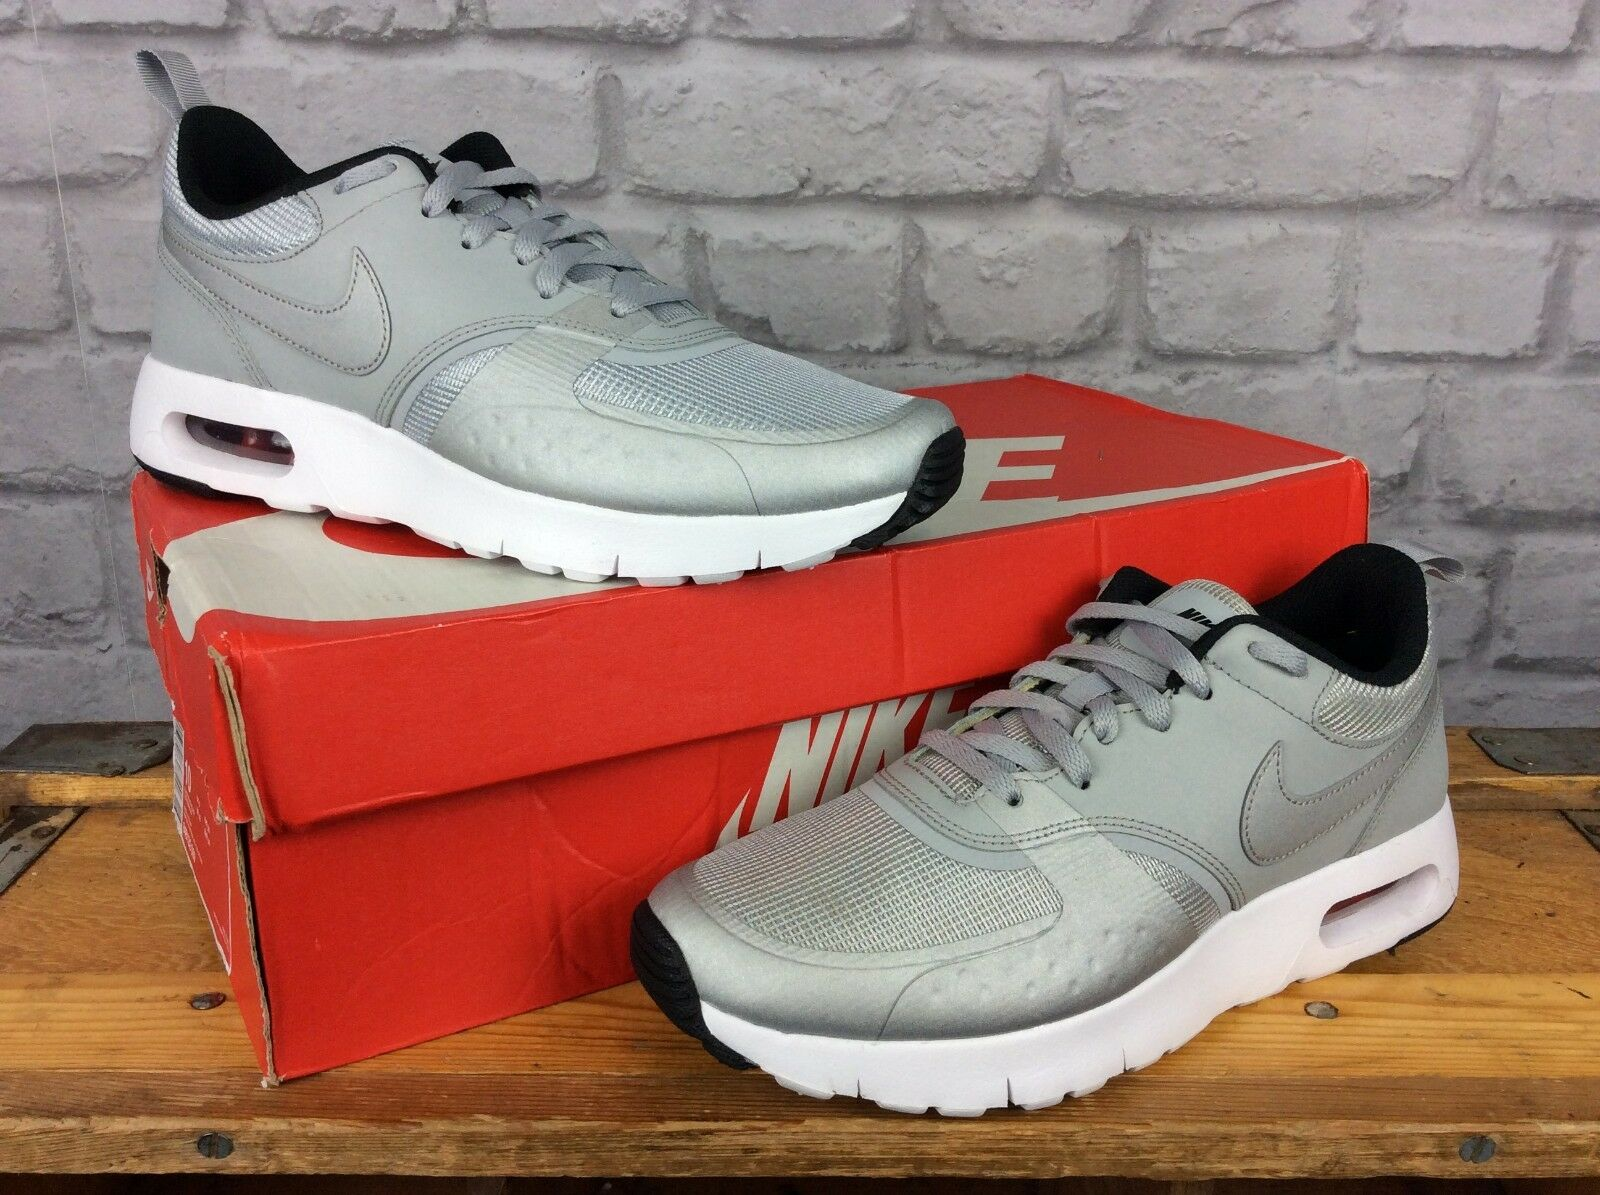 NIKE UK 5 EUR 38 GREY SILVER METALLIC AIR AIR AIR MAX VISION CHILDREN BOYS GIRLS LADIES 62bdc5